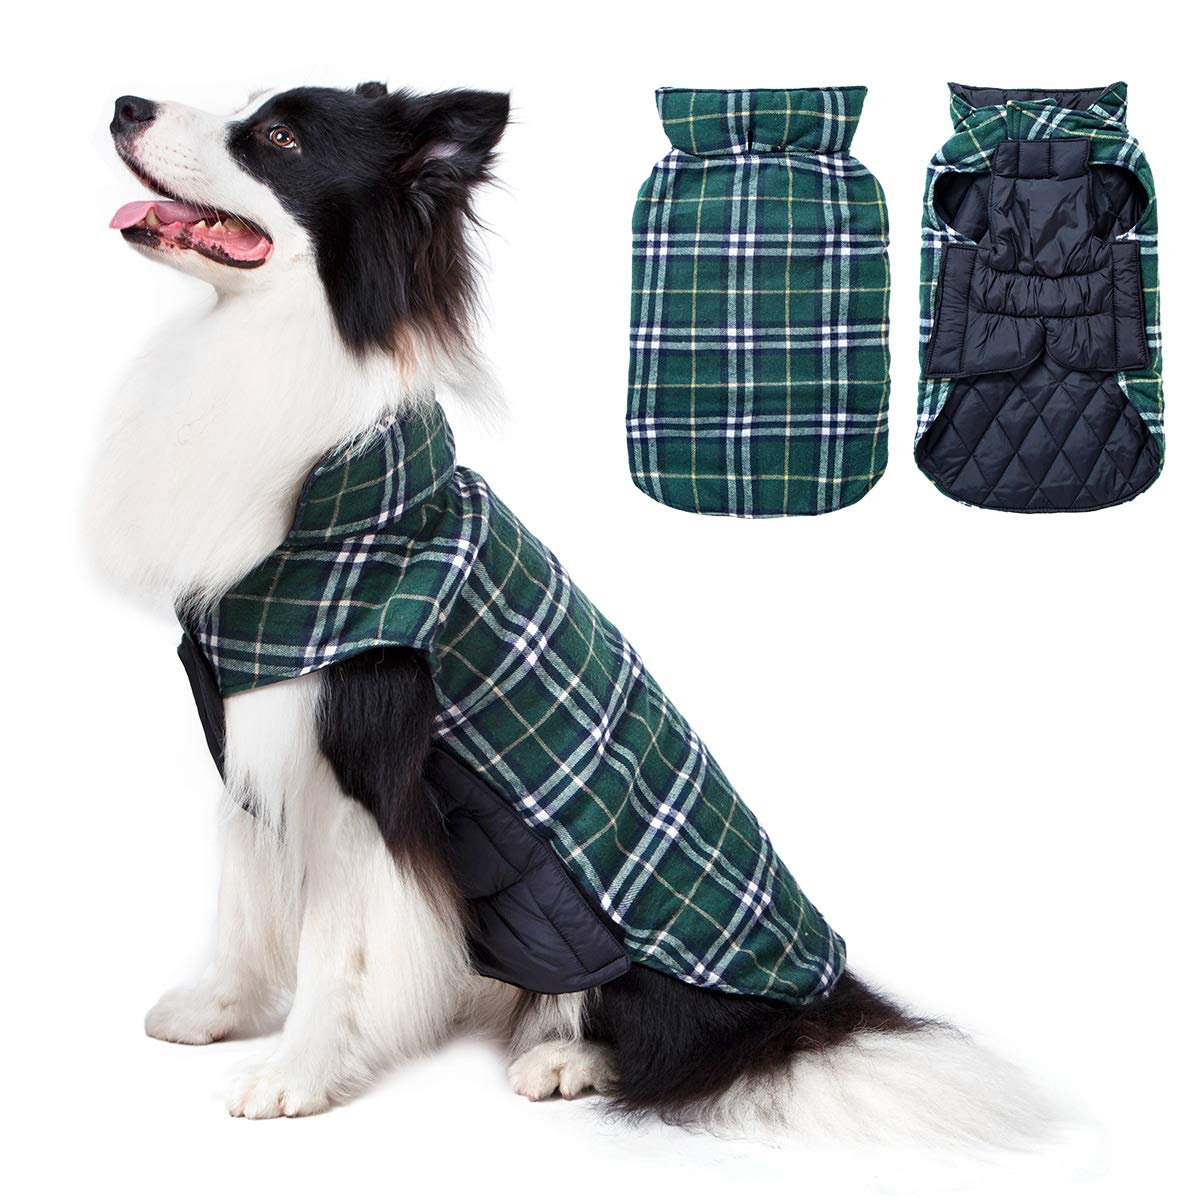 Green XL(Back 16.93 inch;Chest 24.41-28.35 inch) Green XL(Back 16.93 inch;Chest 24.41-28.35 inch) TPHC Dog Sweater Medium Large Dogs, Windproof Waterproof Reversible Dog Jacket Warm Apparel Winter, British Style Plaid Dog Coat Cold Weather,Green XL